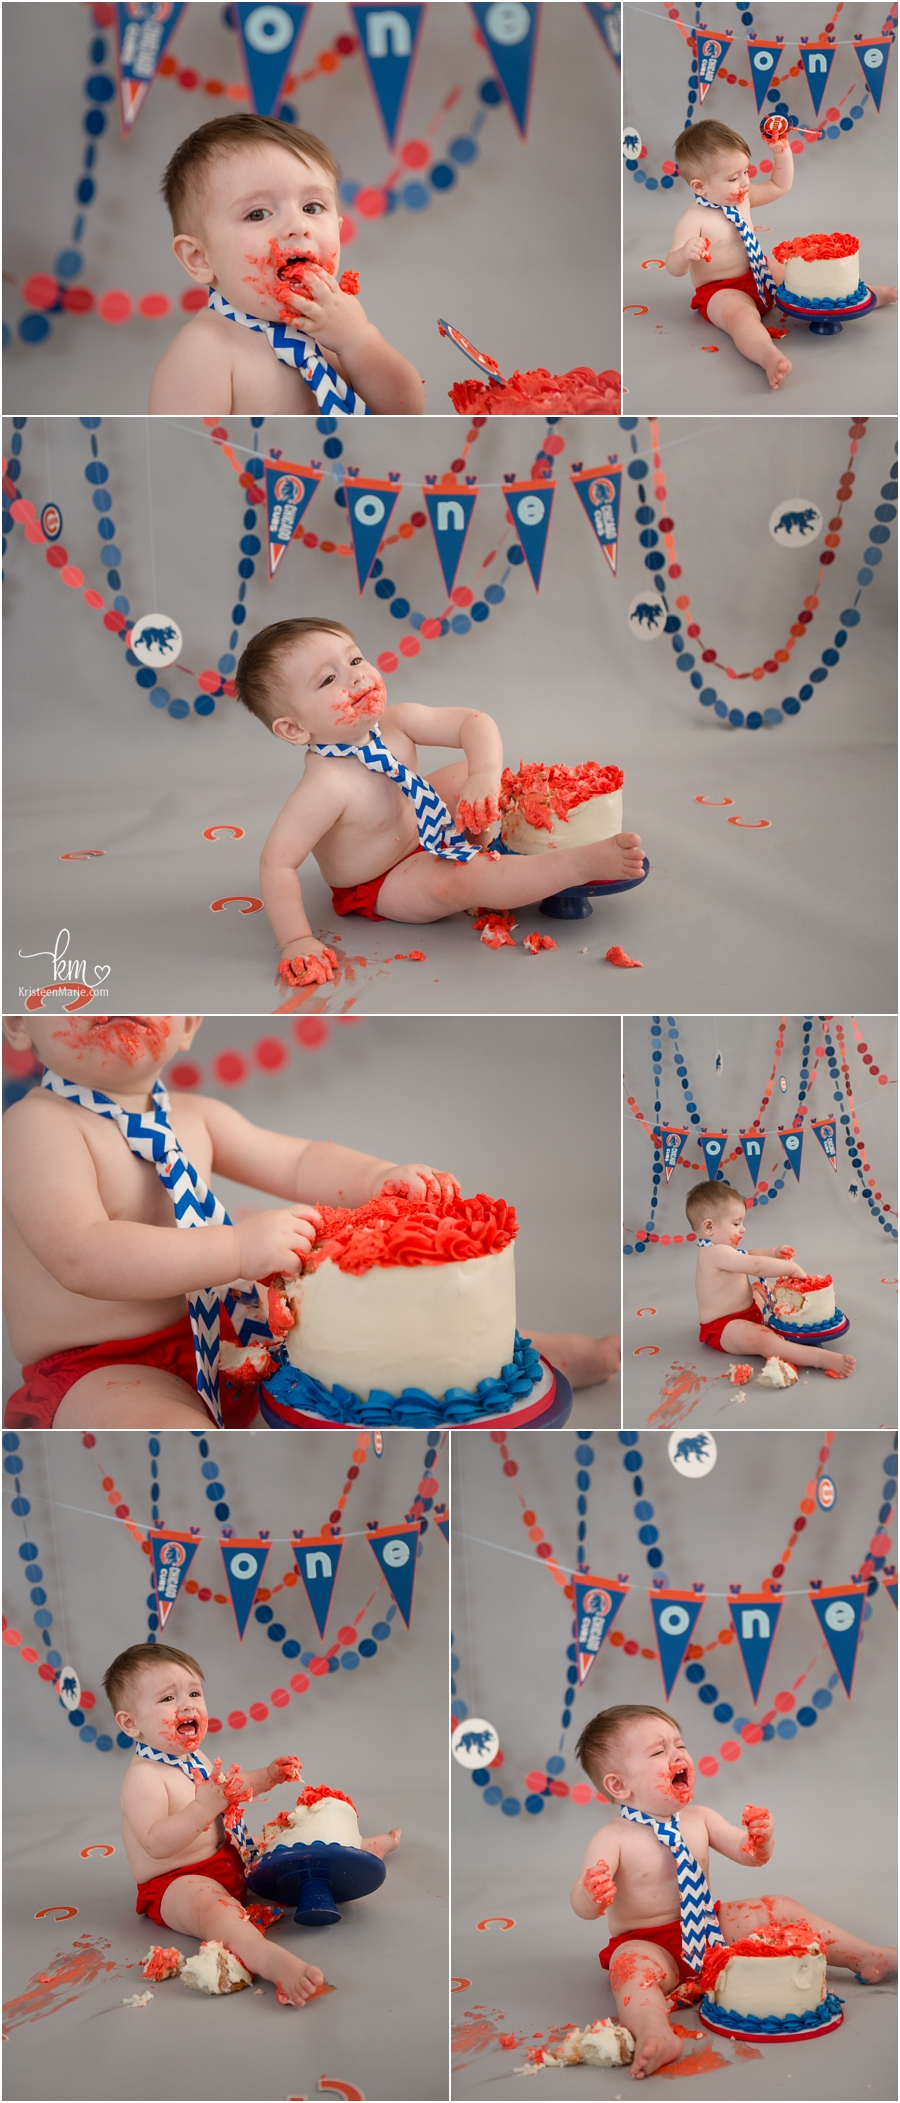 Baseball themed cake smash for baby's first birthday - Chicago Cubs